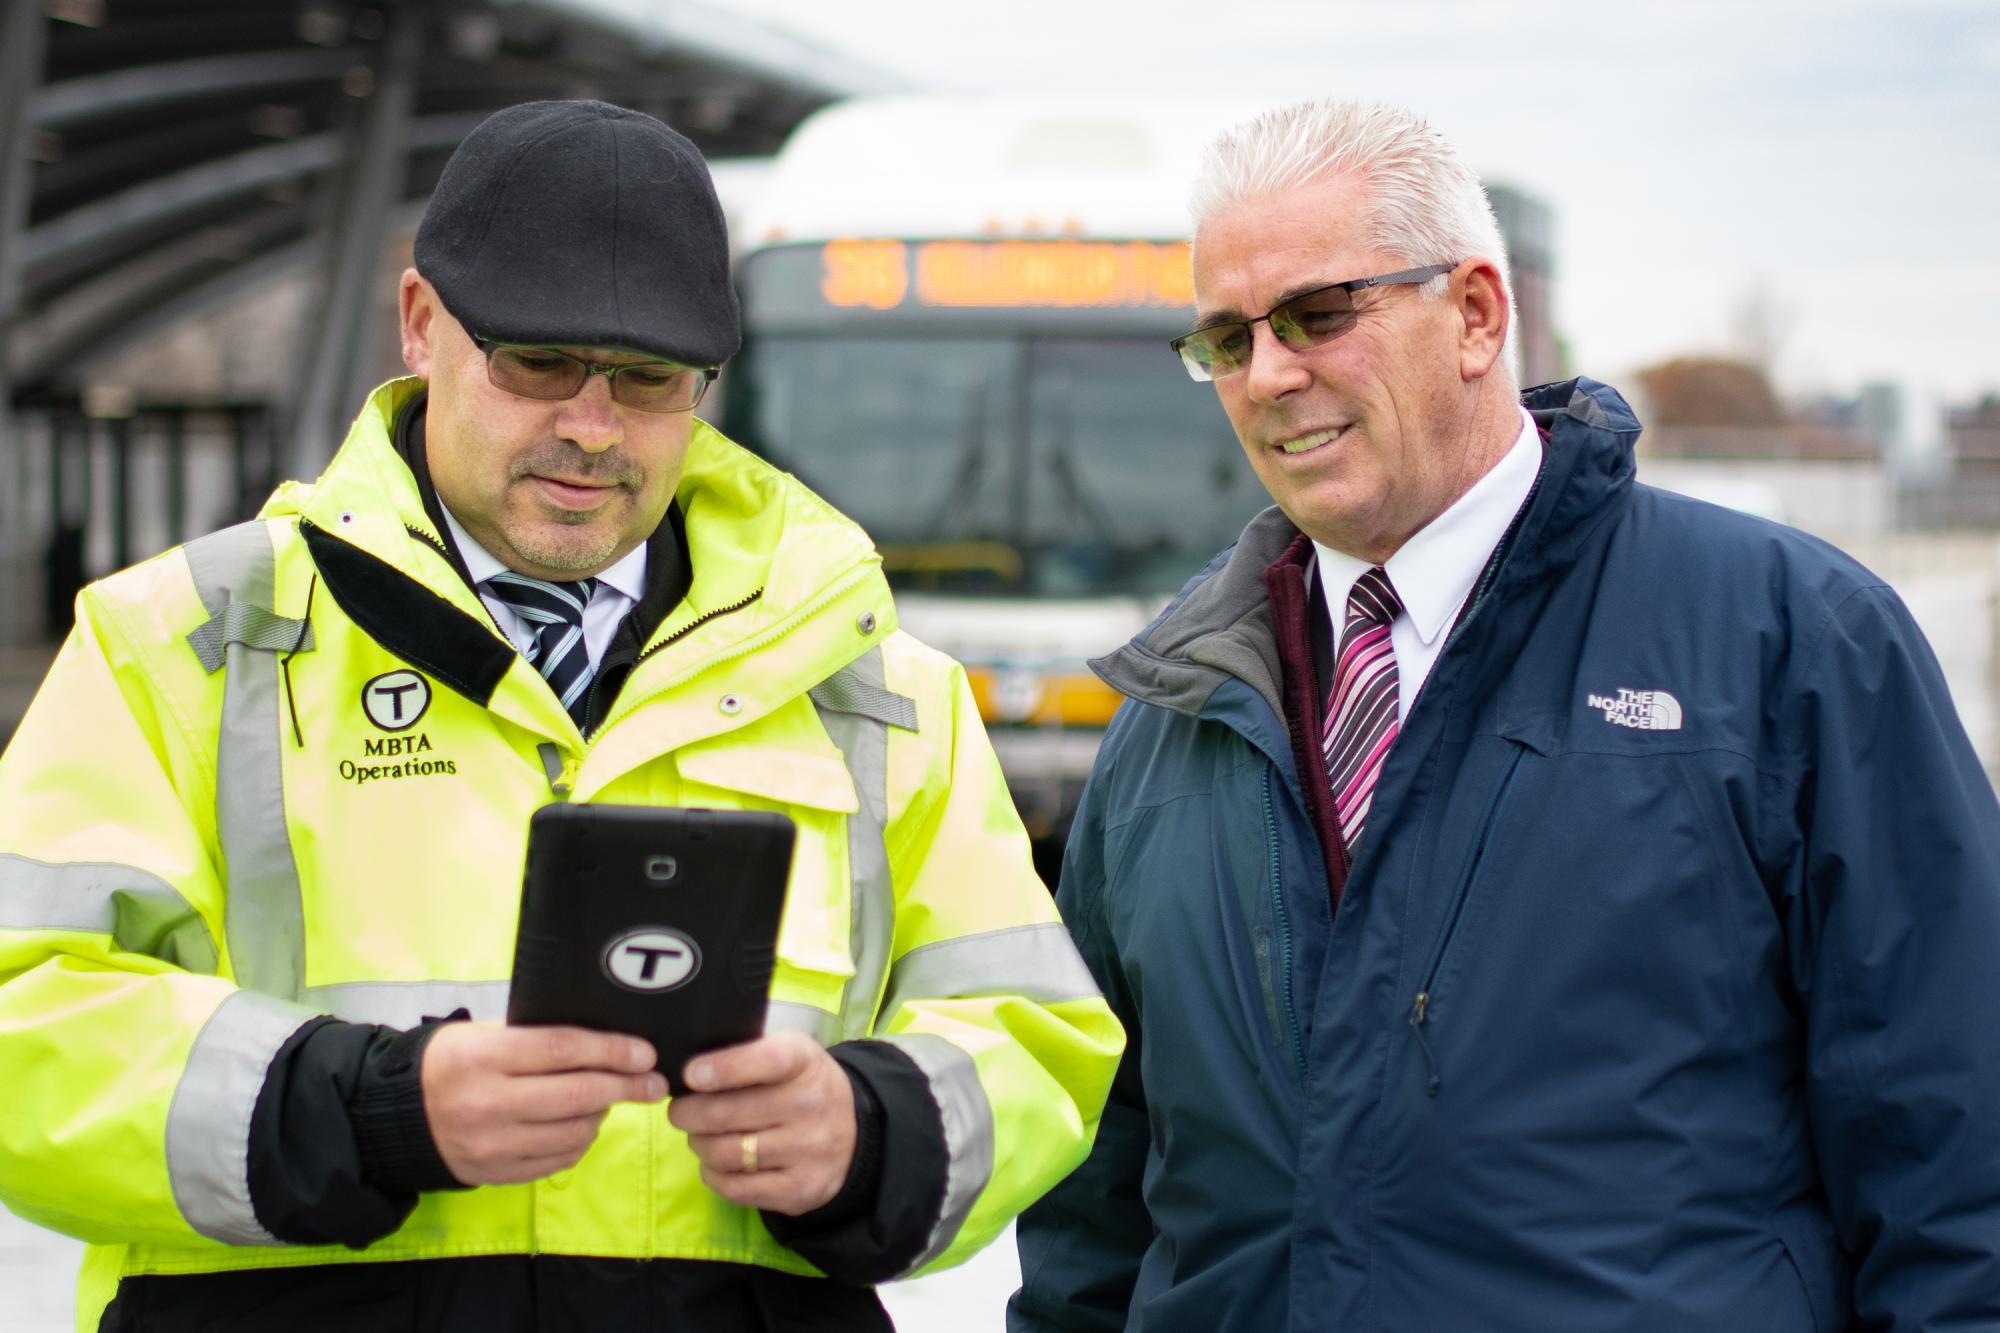 Road Control Supervisors Dorsey Dugan and Brian Clifford, who helped design Skate, a mobile dispatching app for bus inspectors